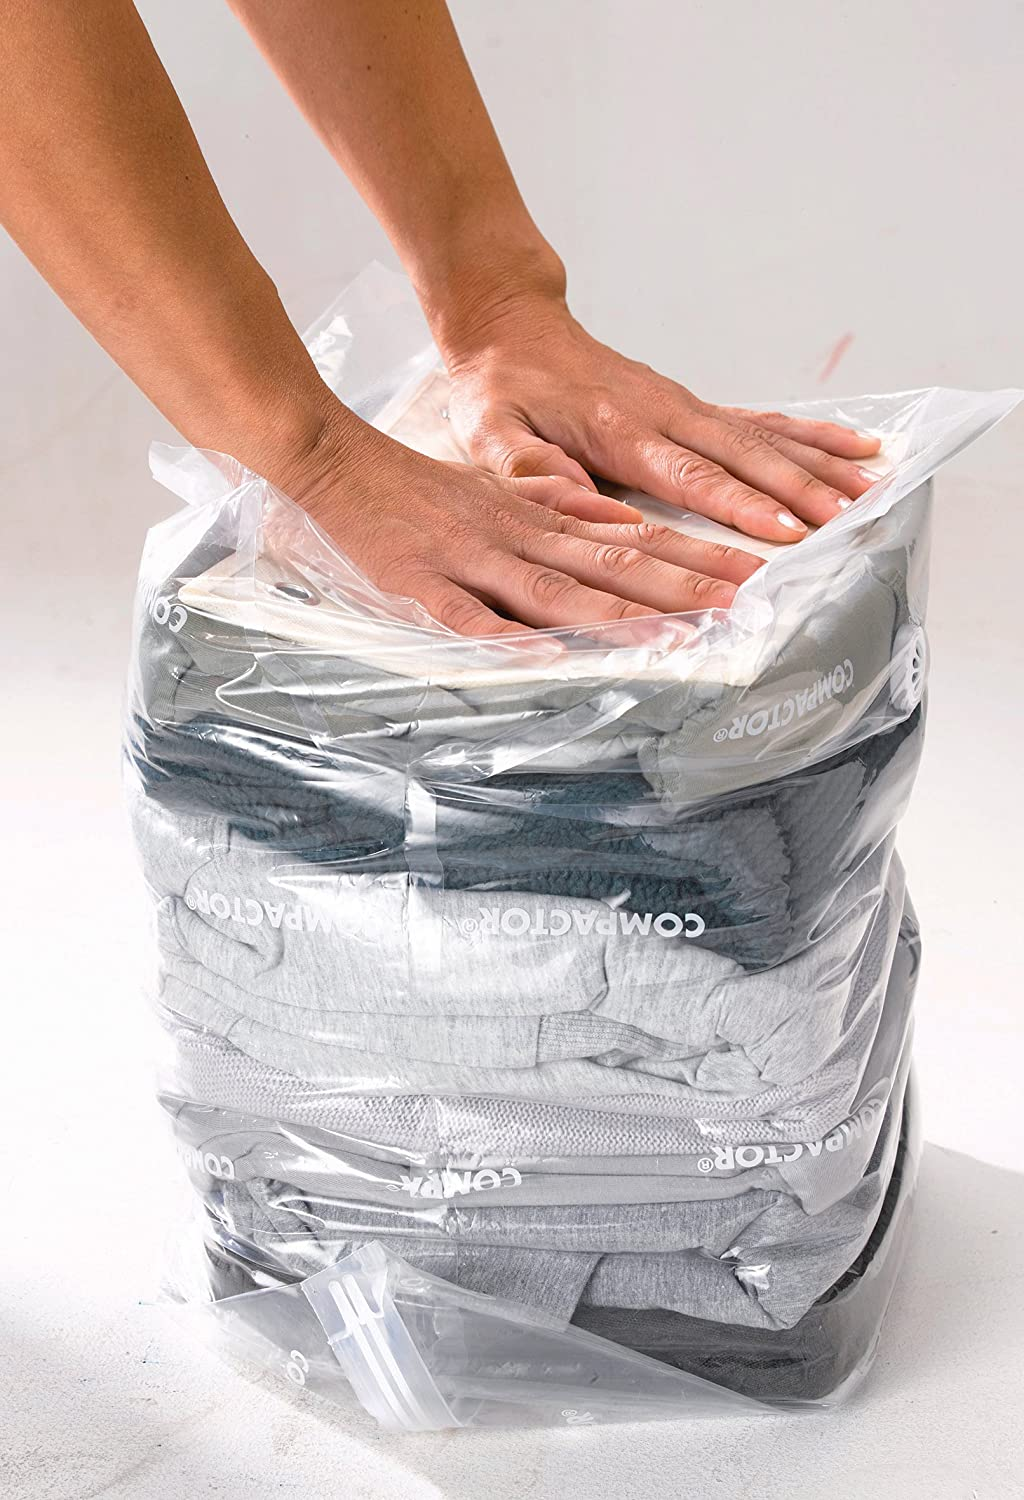 Clear Compactor Compact Express Space Saving Vacuum Storage Bag for 9 Jumpers 30 x 20 x 50cm